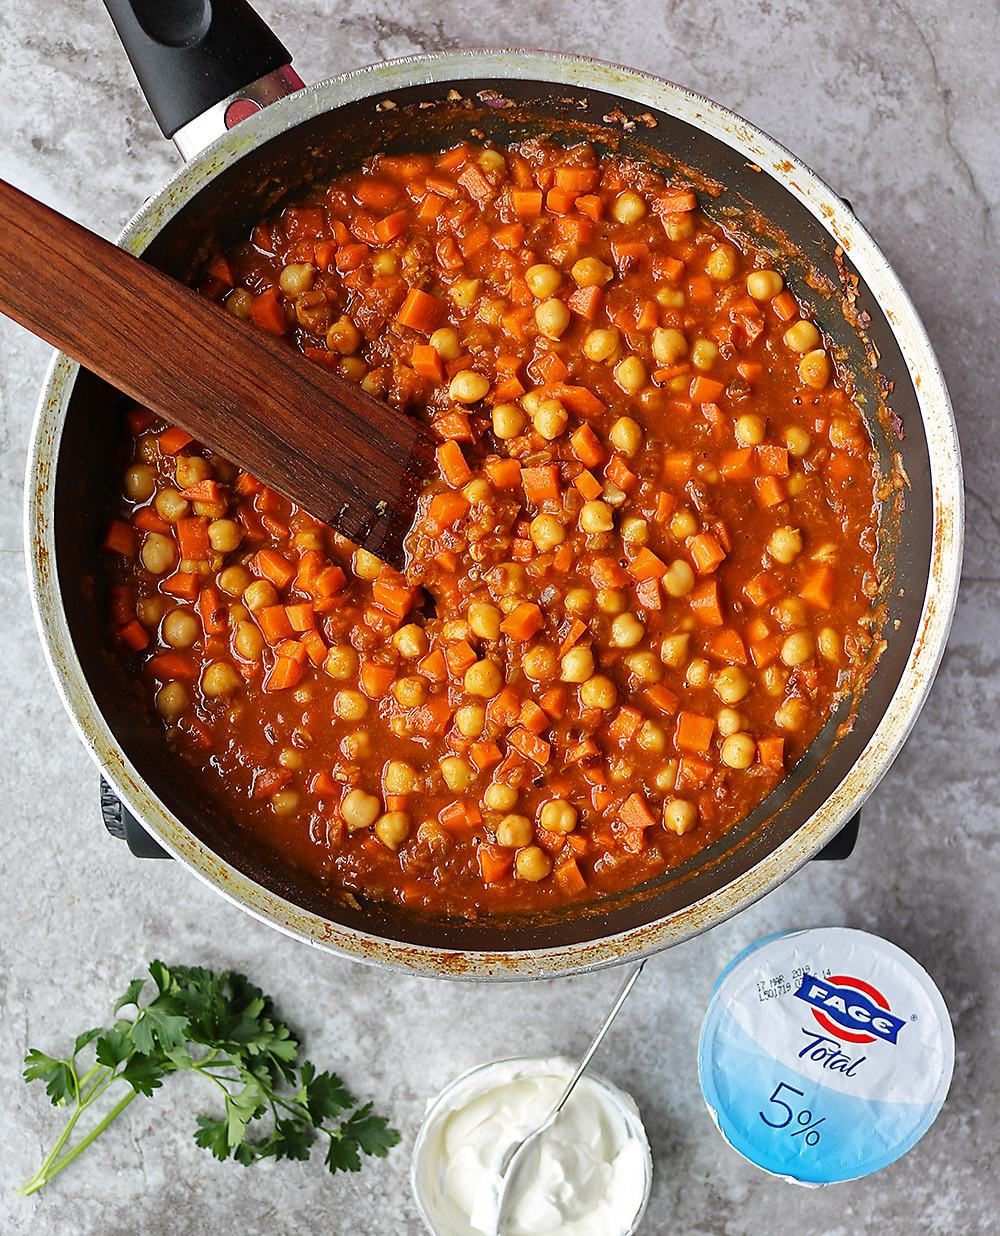 Making Delicious Chickpea Carrot Curry